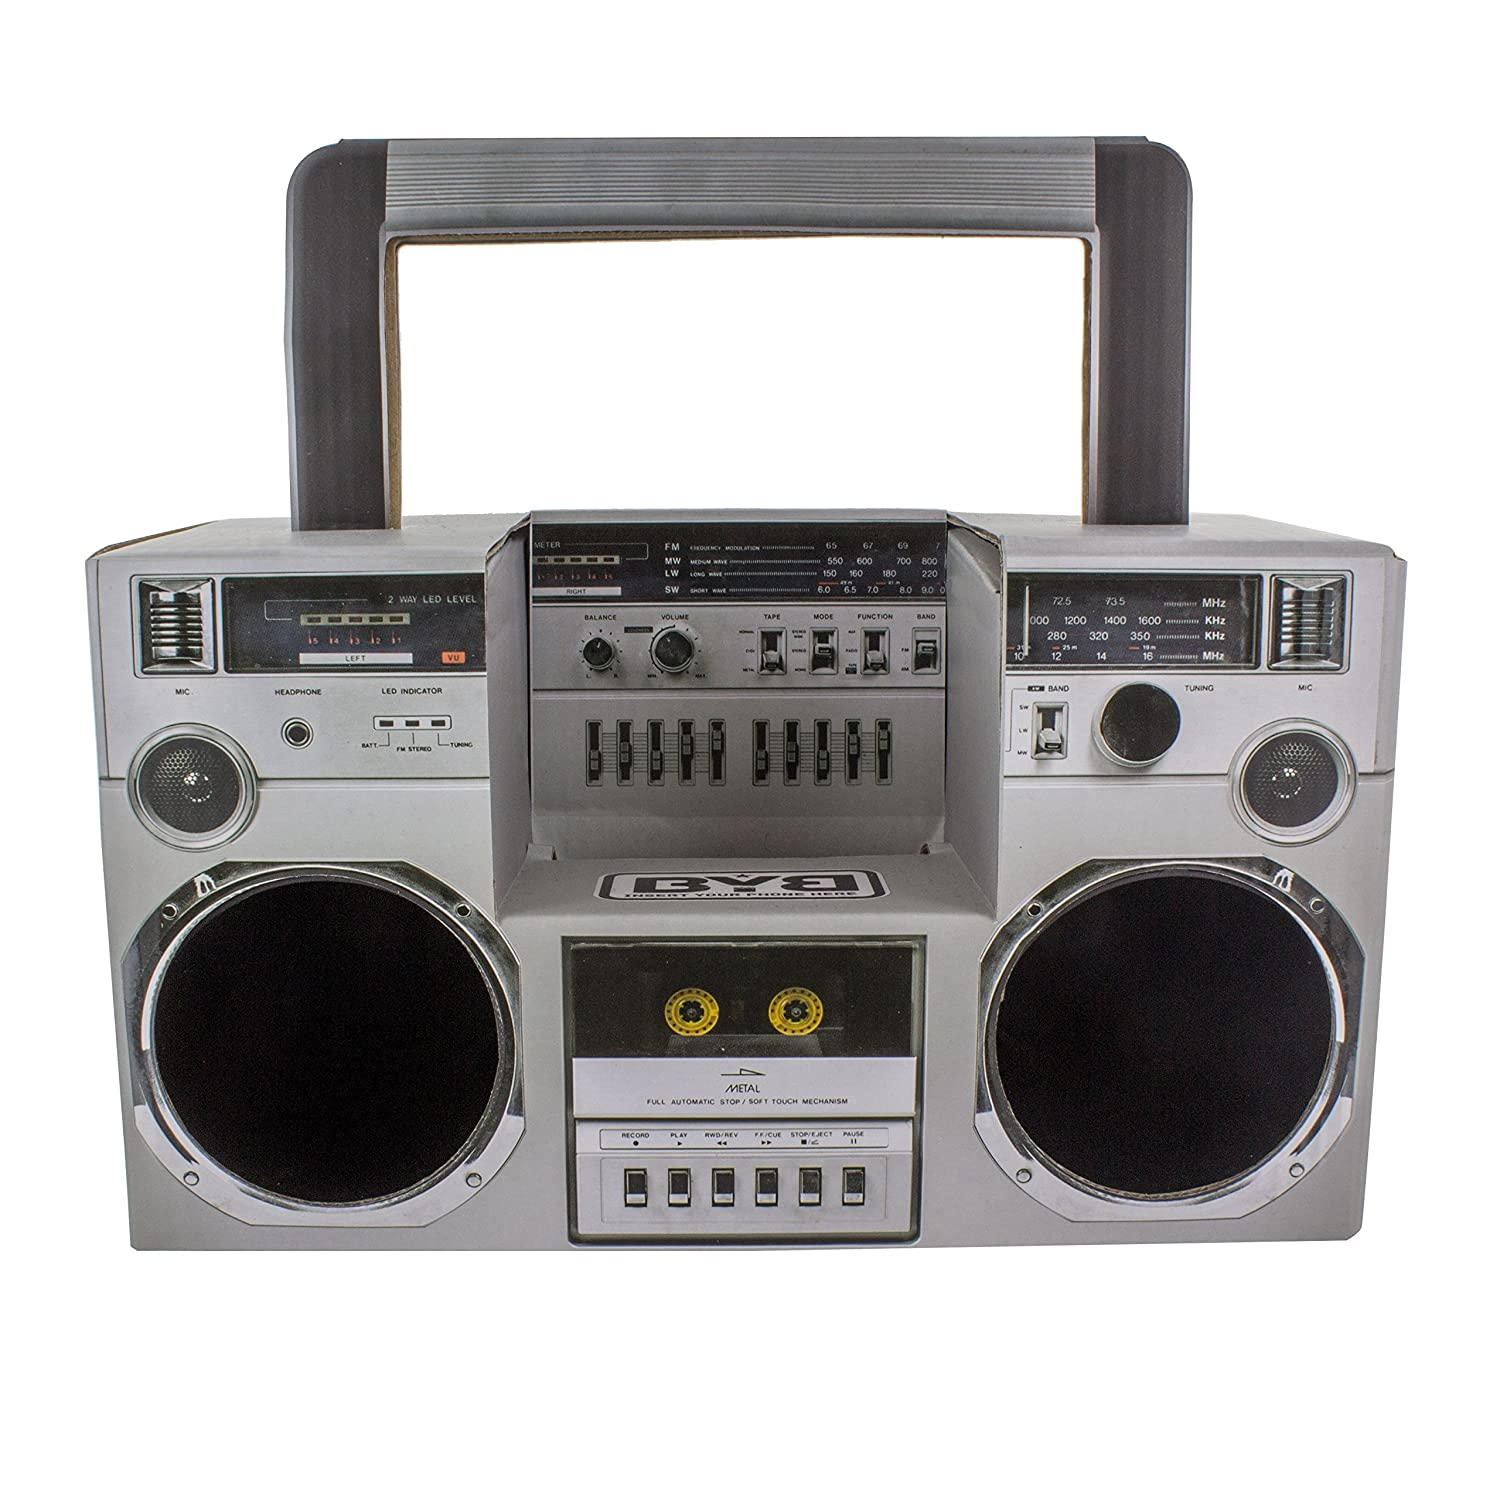 Image result for boombox